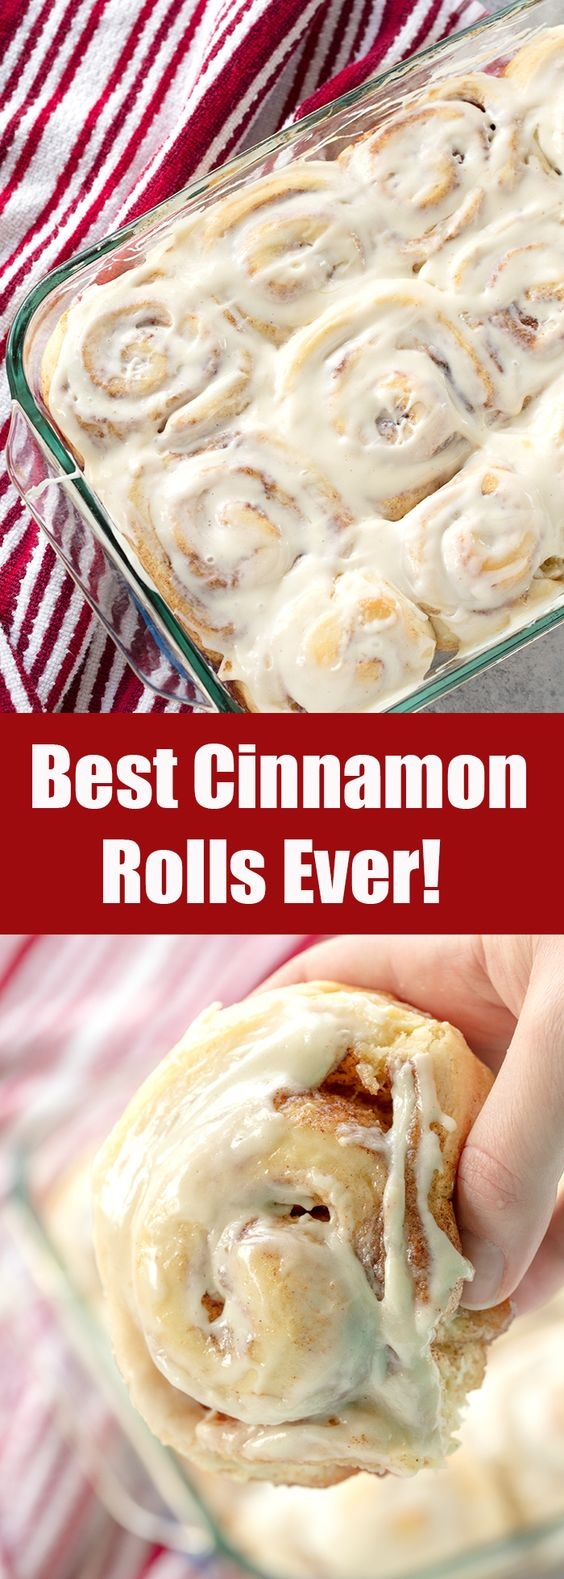 The Best Homemade Cinnamon Rolls Ever!